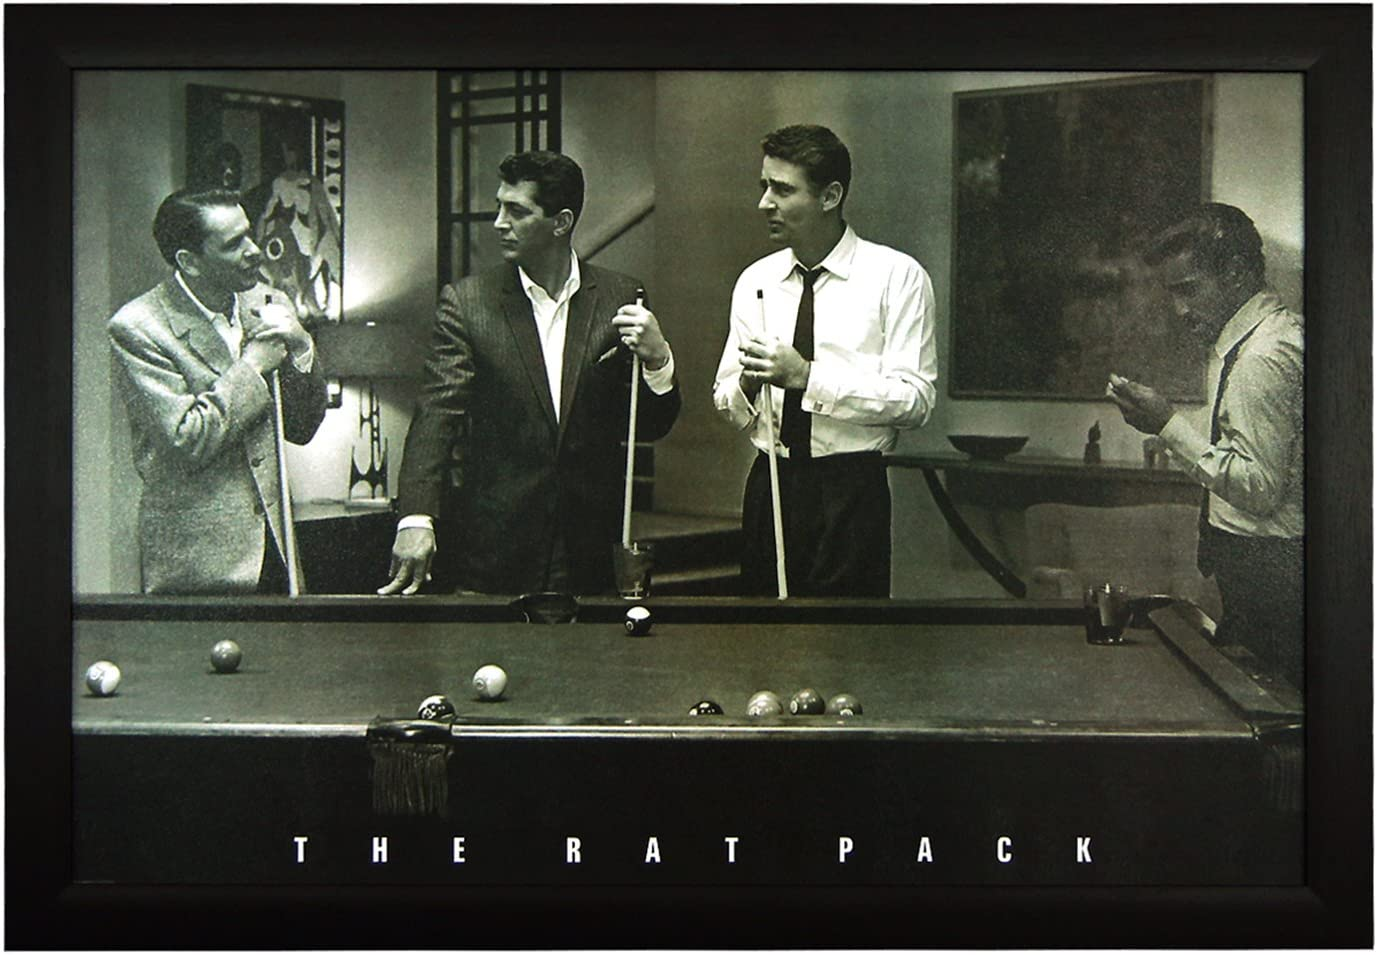 El Rat Pack, mesa de billar 24